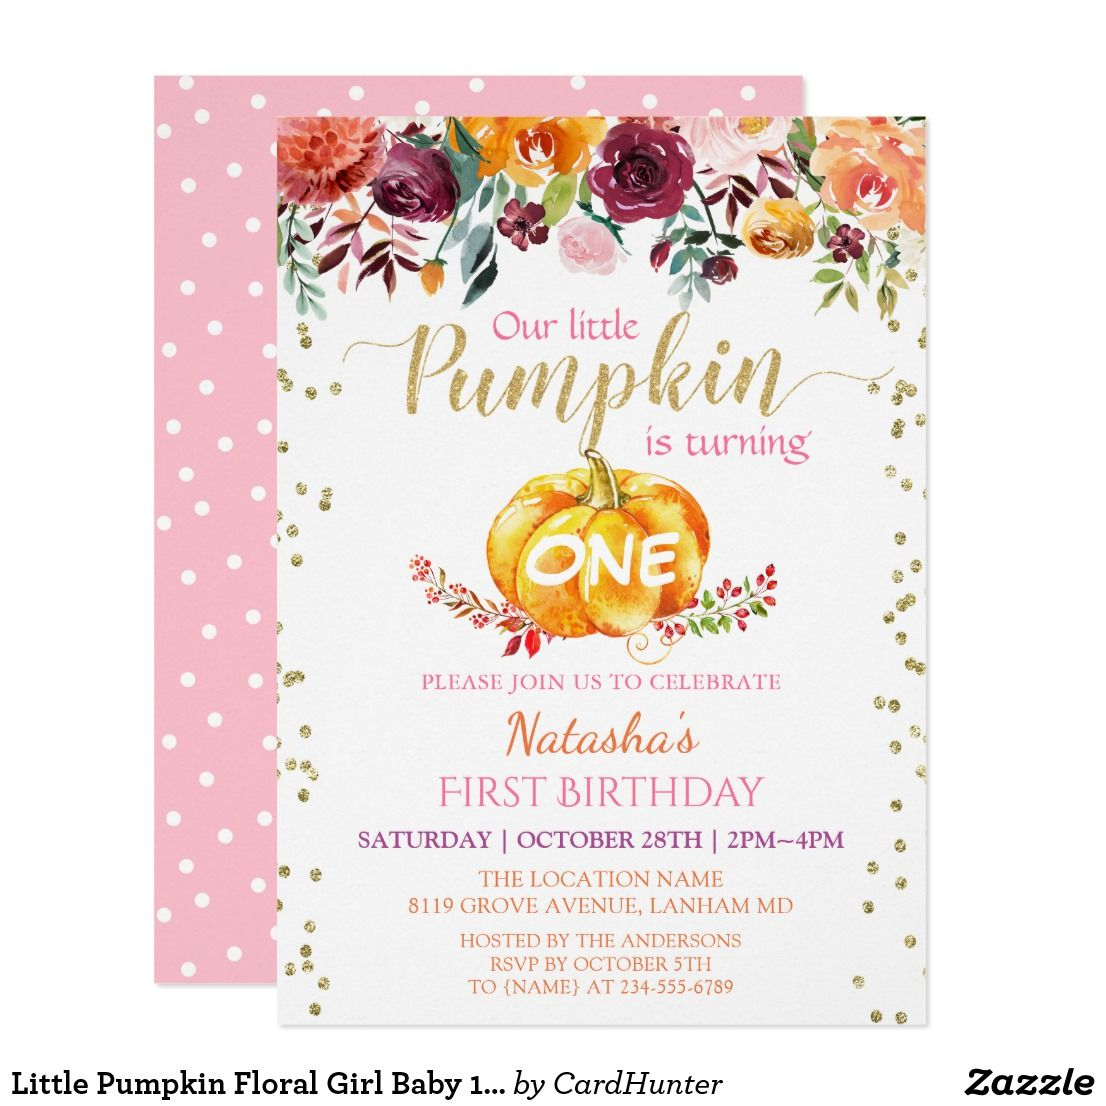 Little pumpkin floral girl baby 1st birthday party invitation glam gold pumpkin floral polka dots first birthday baby girl pretty personalized flowers 1st birthday party stopboris Images